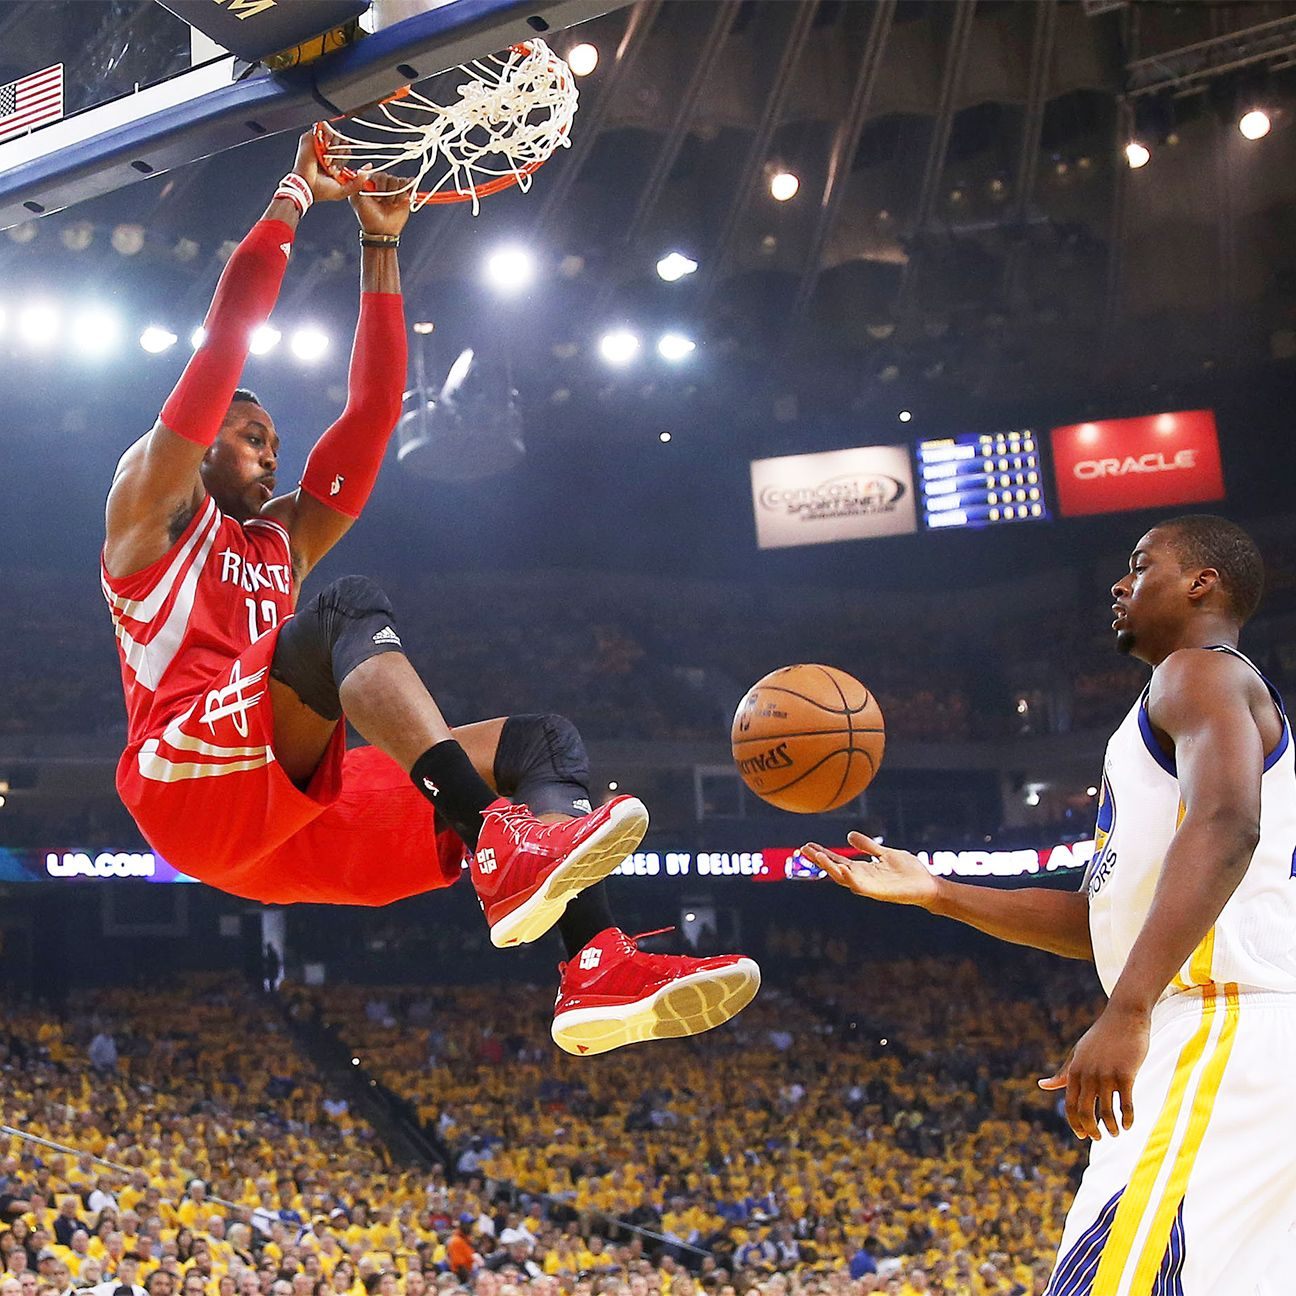 Houston Rockets Western Conference Finals: Dwight Howard Of Houston Rockets To Play In Game 2 Of